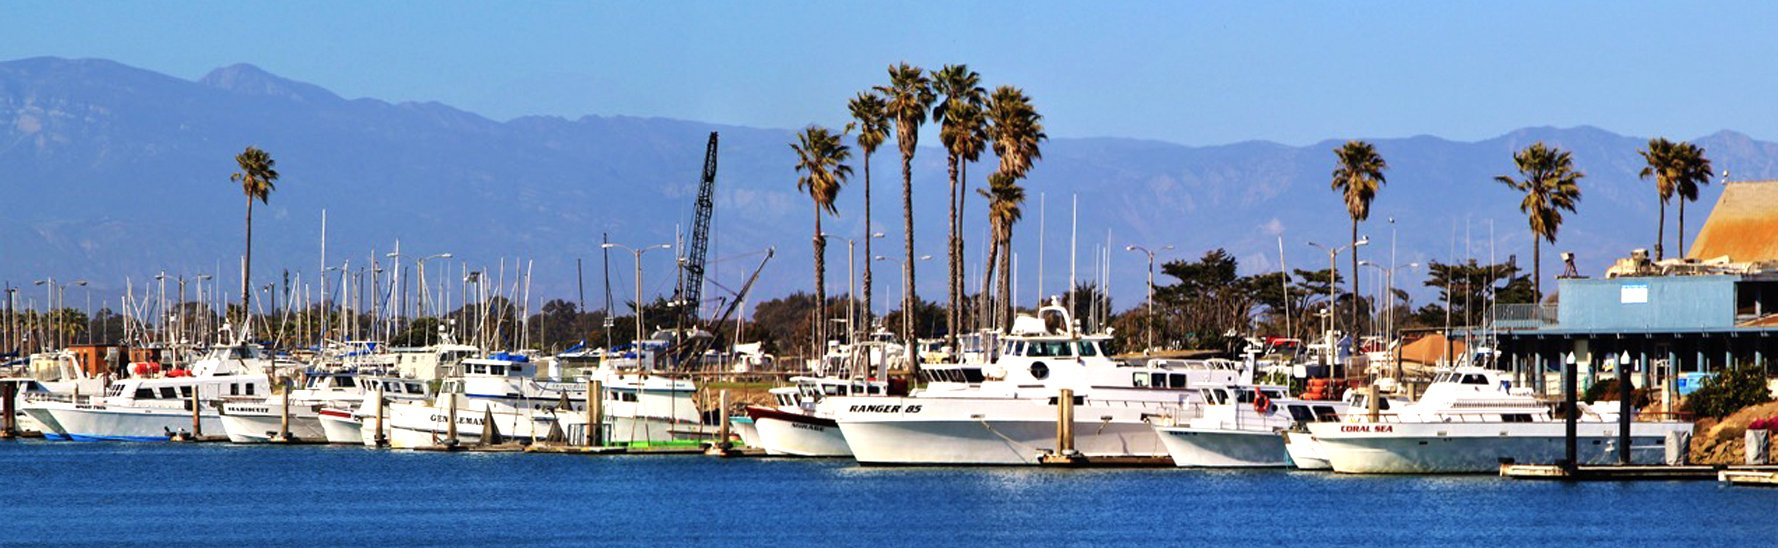 Sportfishing oxnard southern california channel for Deep sea fishing in california